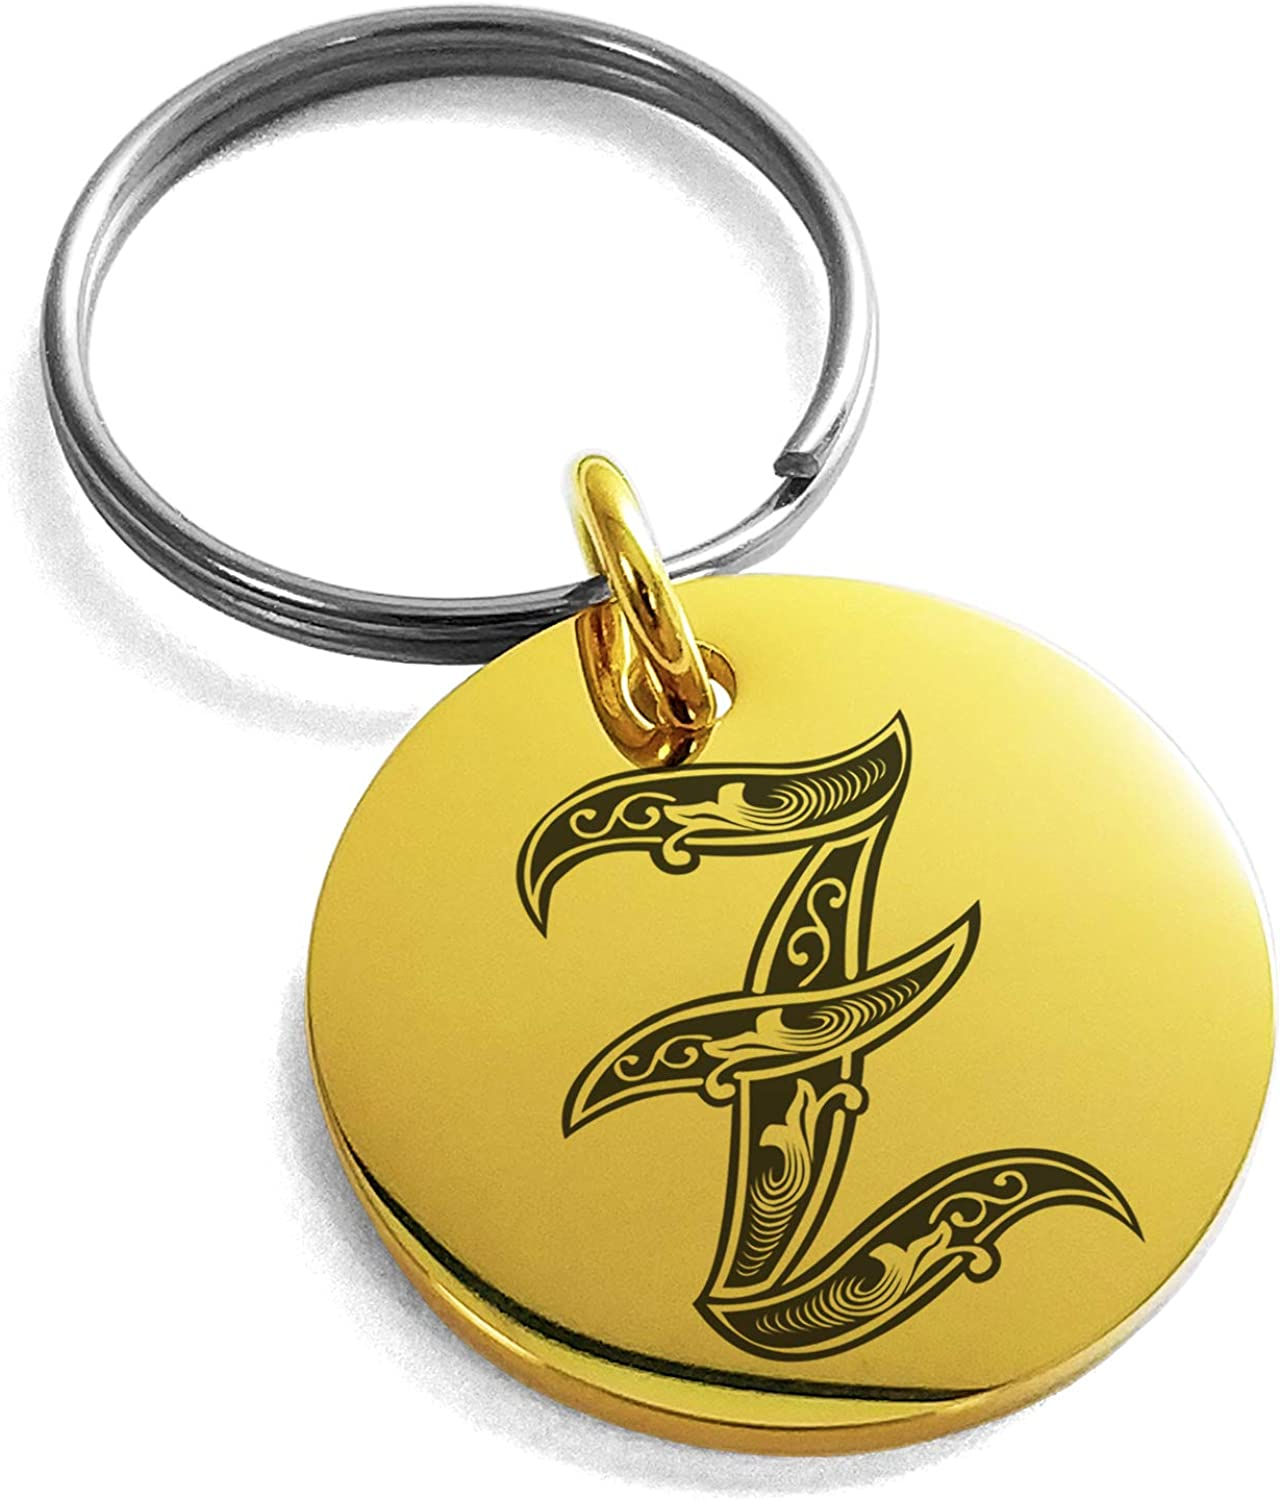 Tioneer Stainless Steel Letter Z Initial Royal Monogram Small Medallion Circle Charm Keychain Keyring